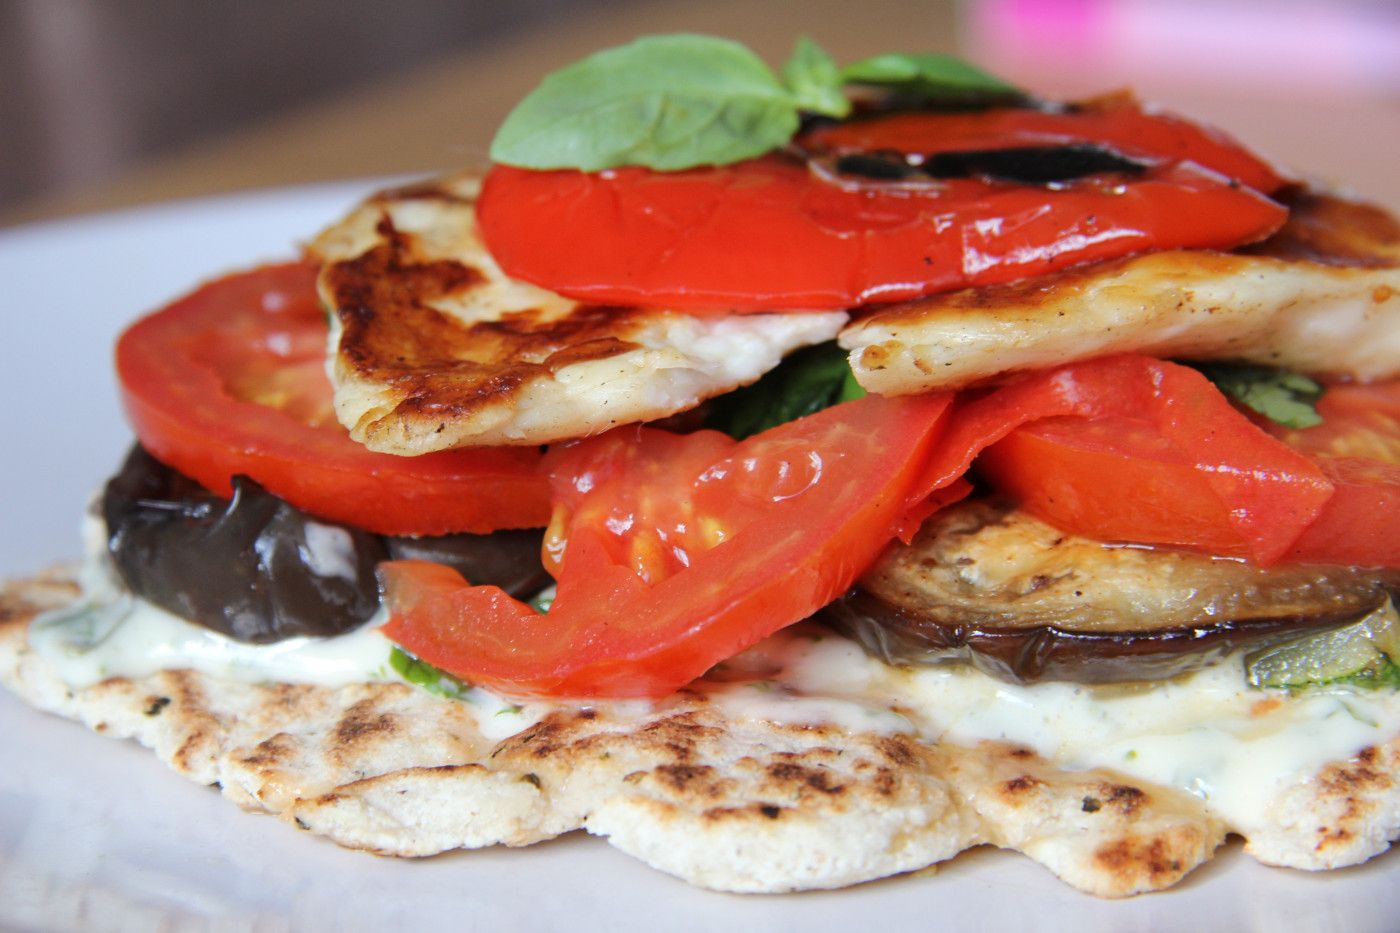 An open sandwich with grilled veggies